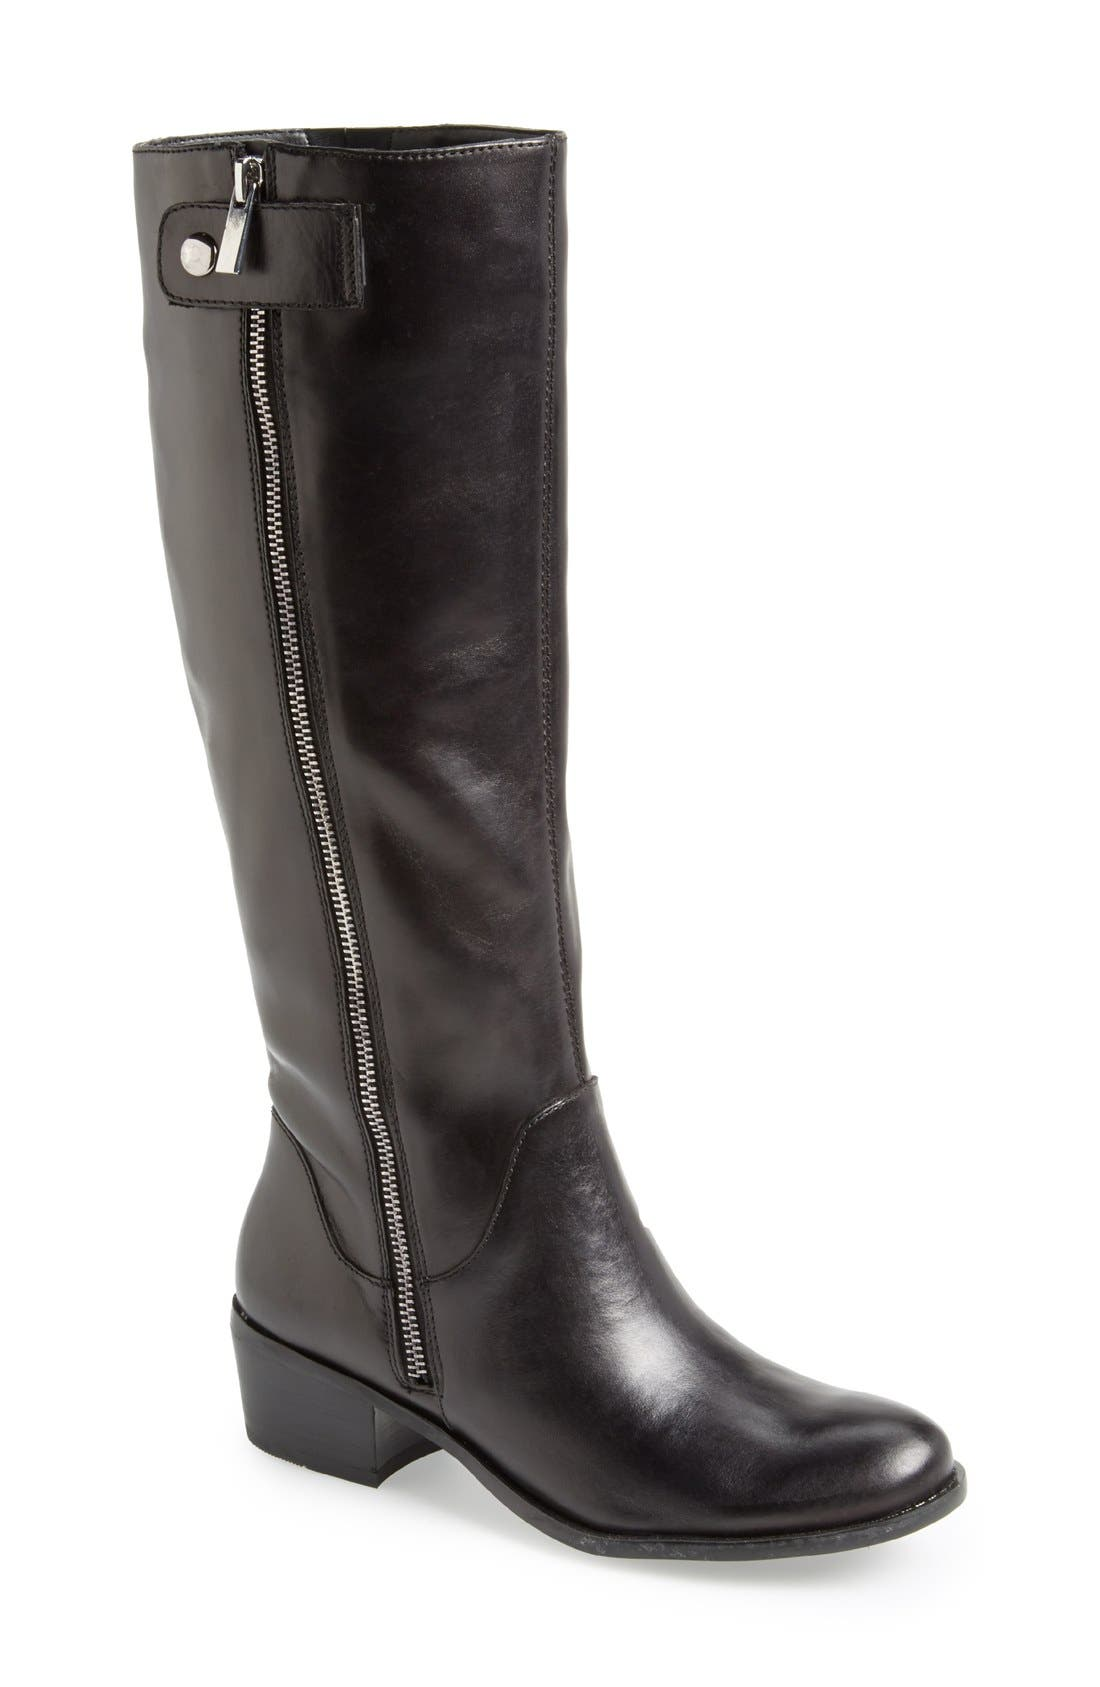 Alternate Image 1 Selected - Sole Society 'Bria' Leather Knee High Boot (Women)